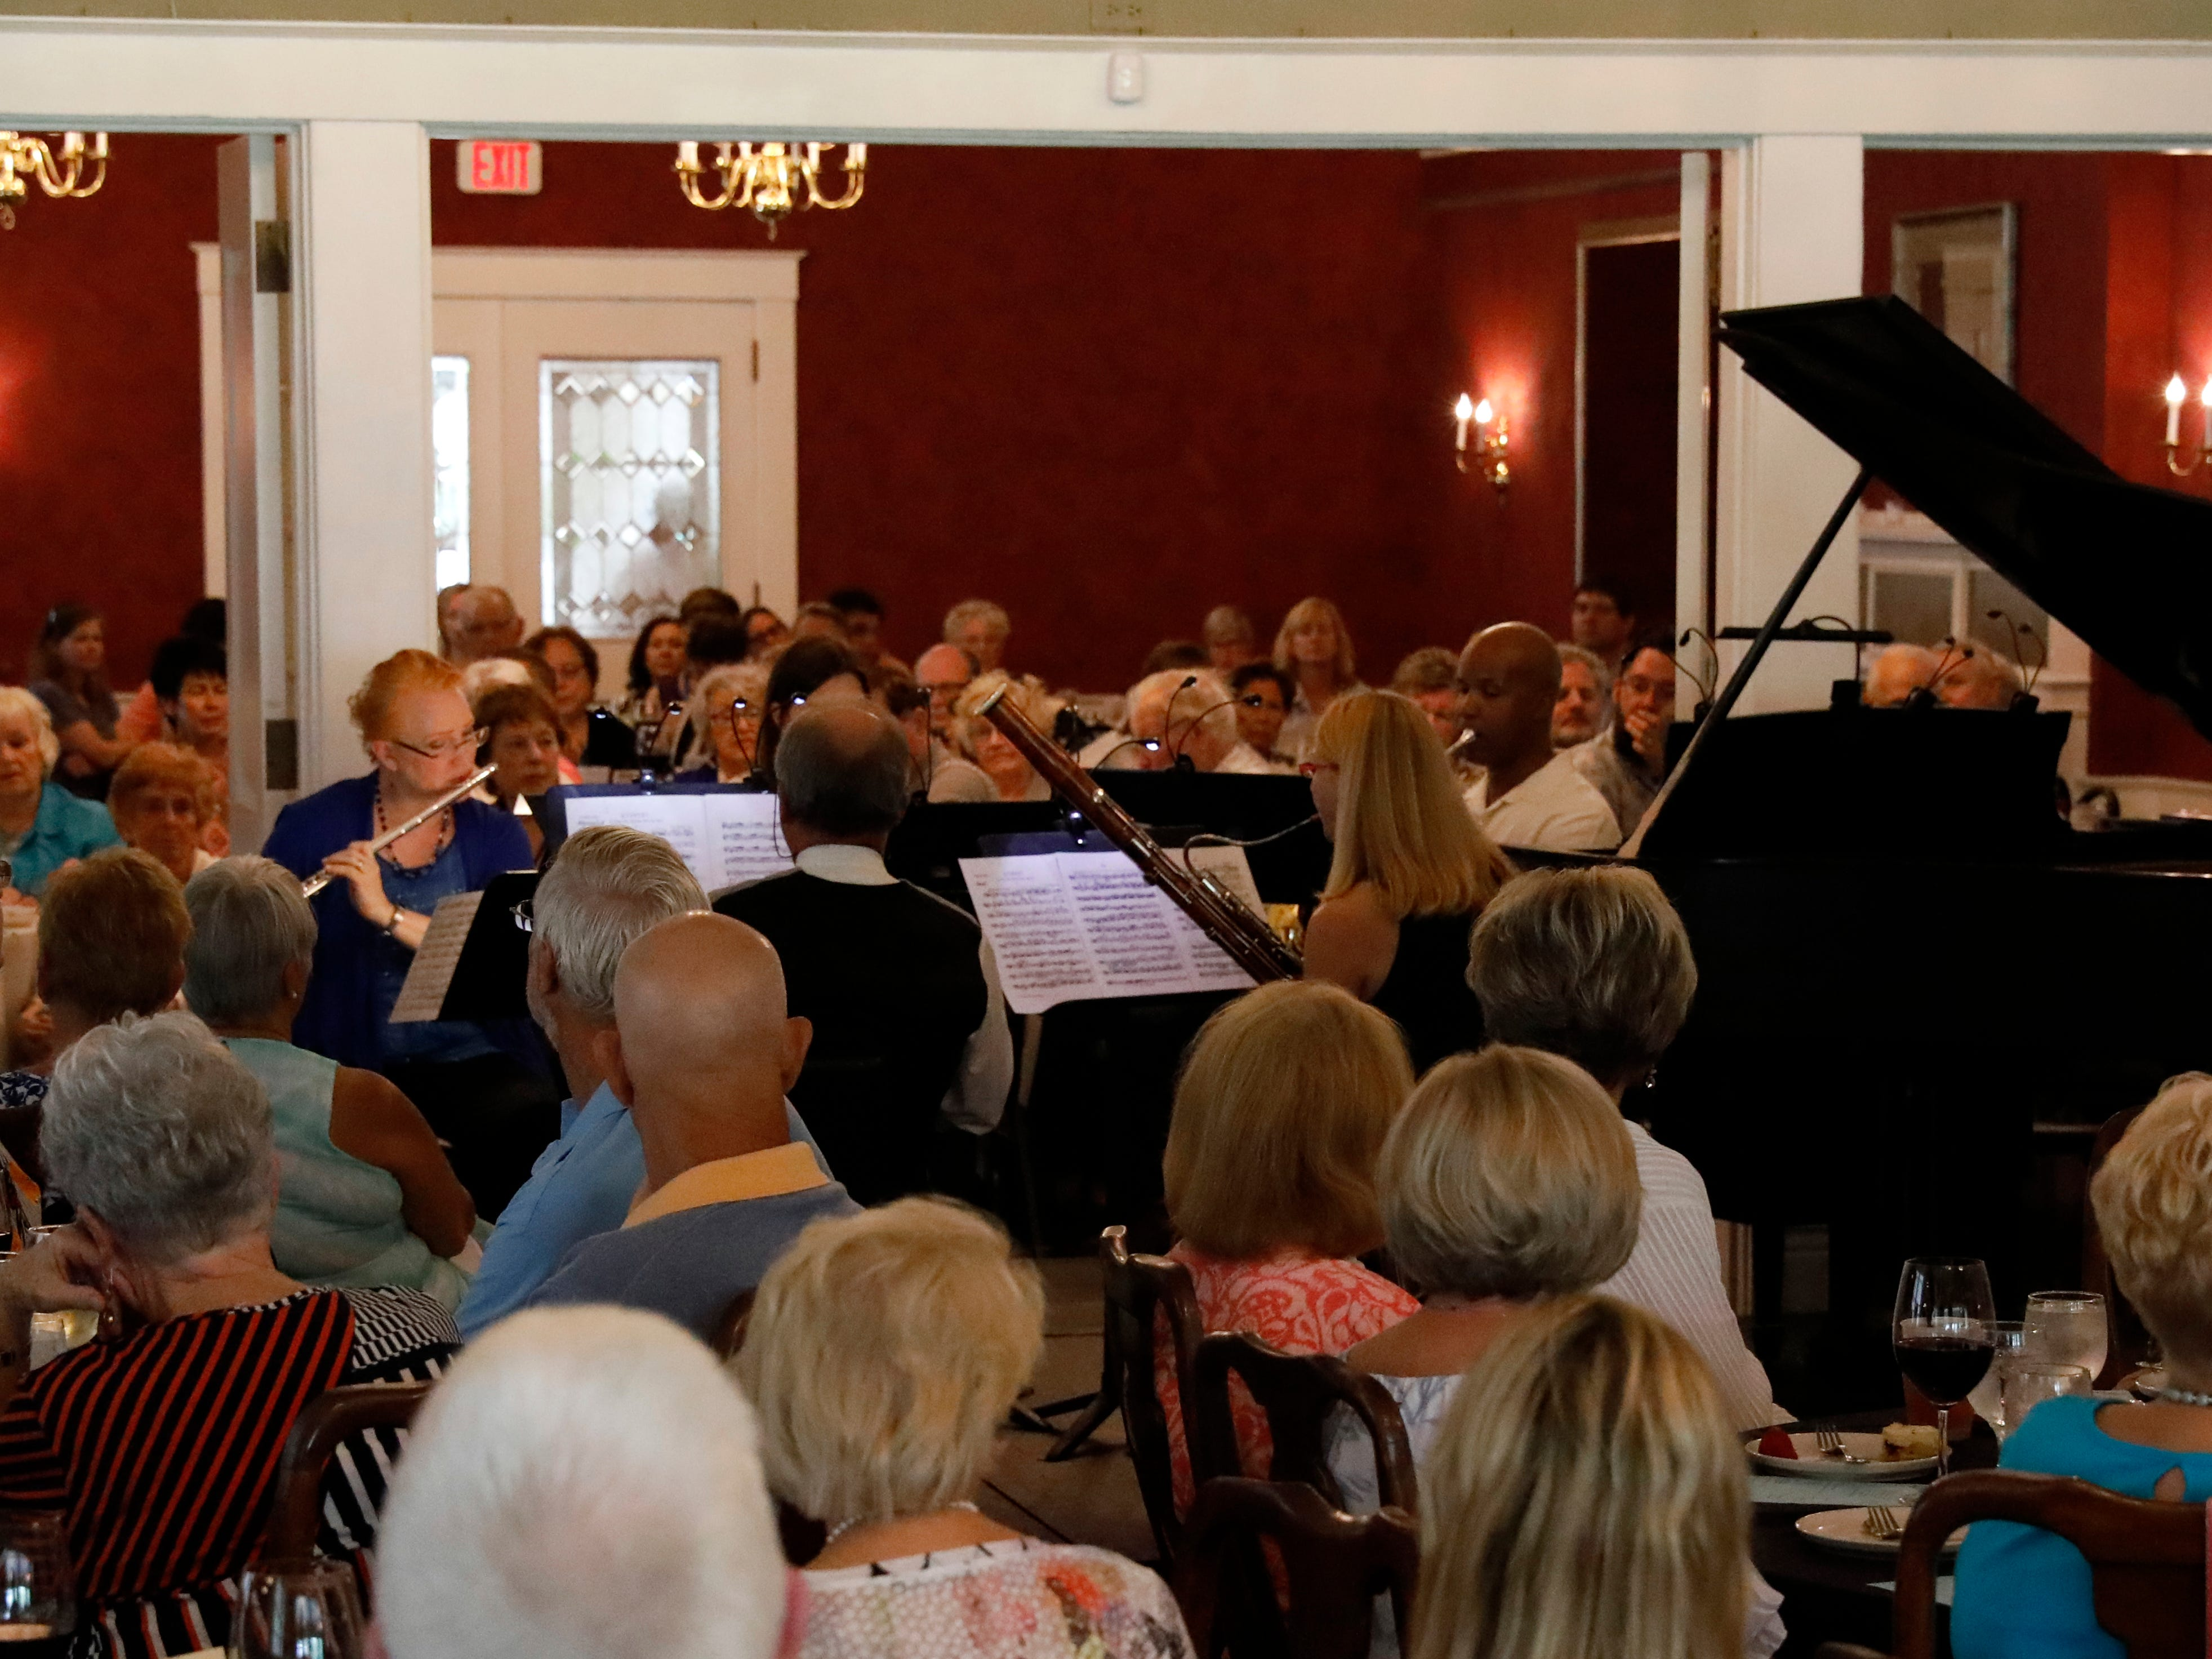 Members of the Lancaster Festival Orchestra woodwind quintet perform Friday afternoon, July 27, 2018, during a Lancaster Festival Cafe Concert at the Lancaster Country Club in Hocking Township. The concert featured principal members from different sections of the Lancaster Festival Orchestra.